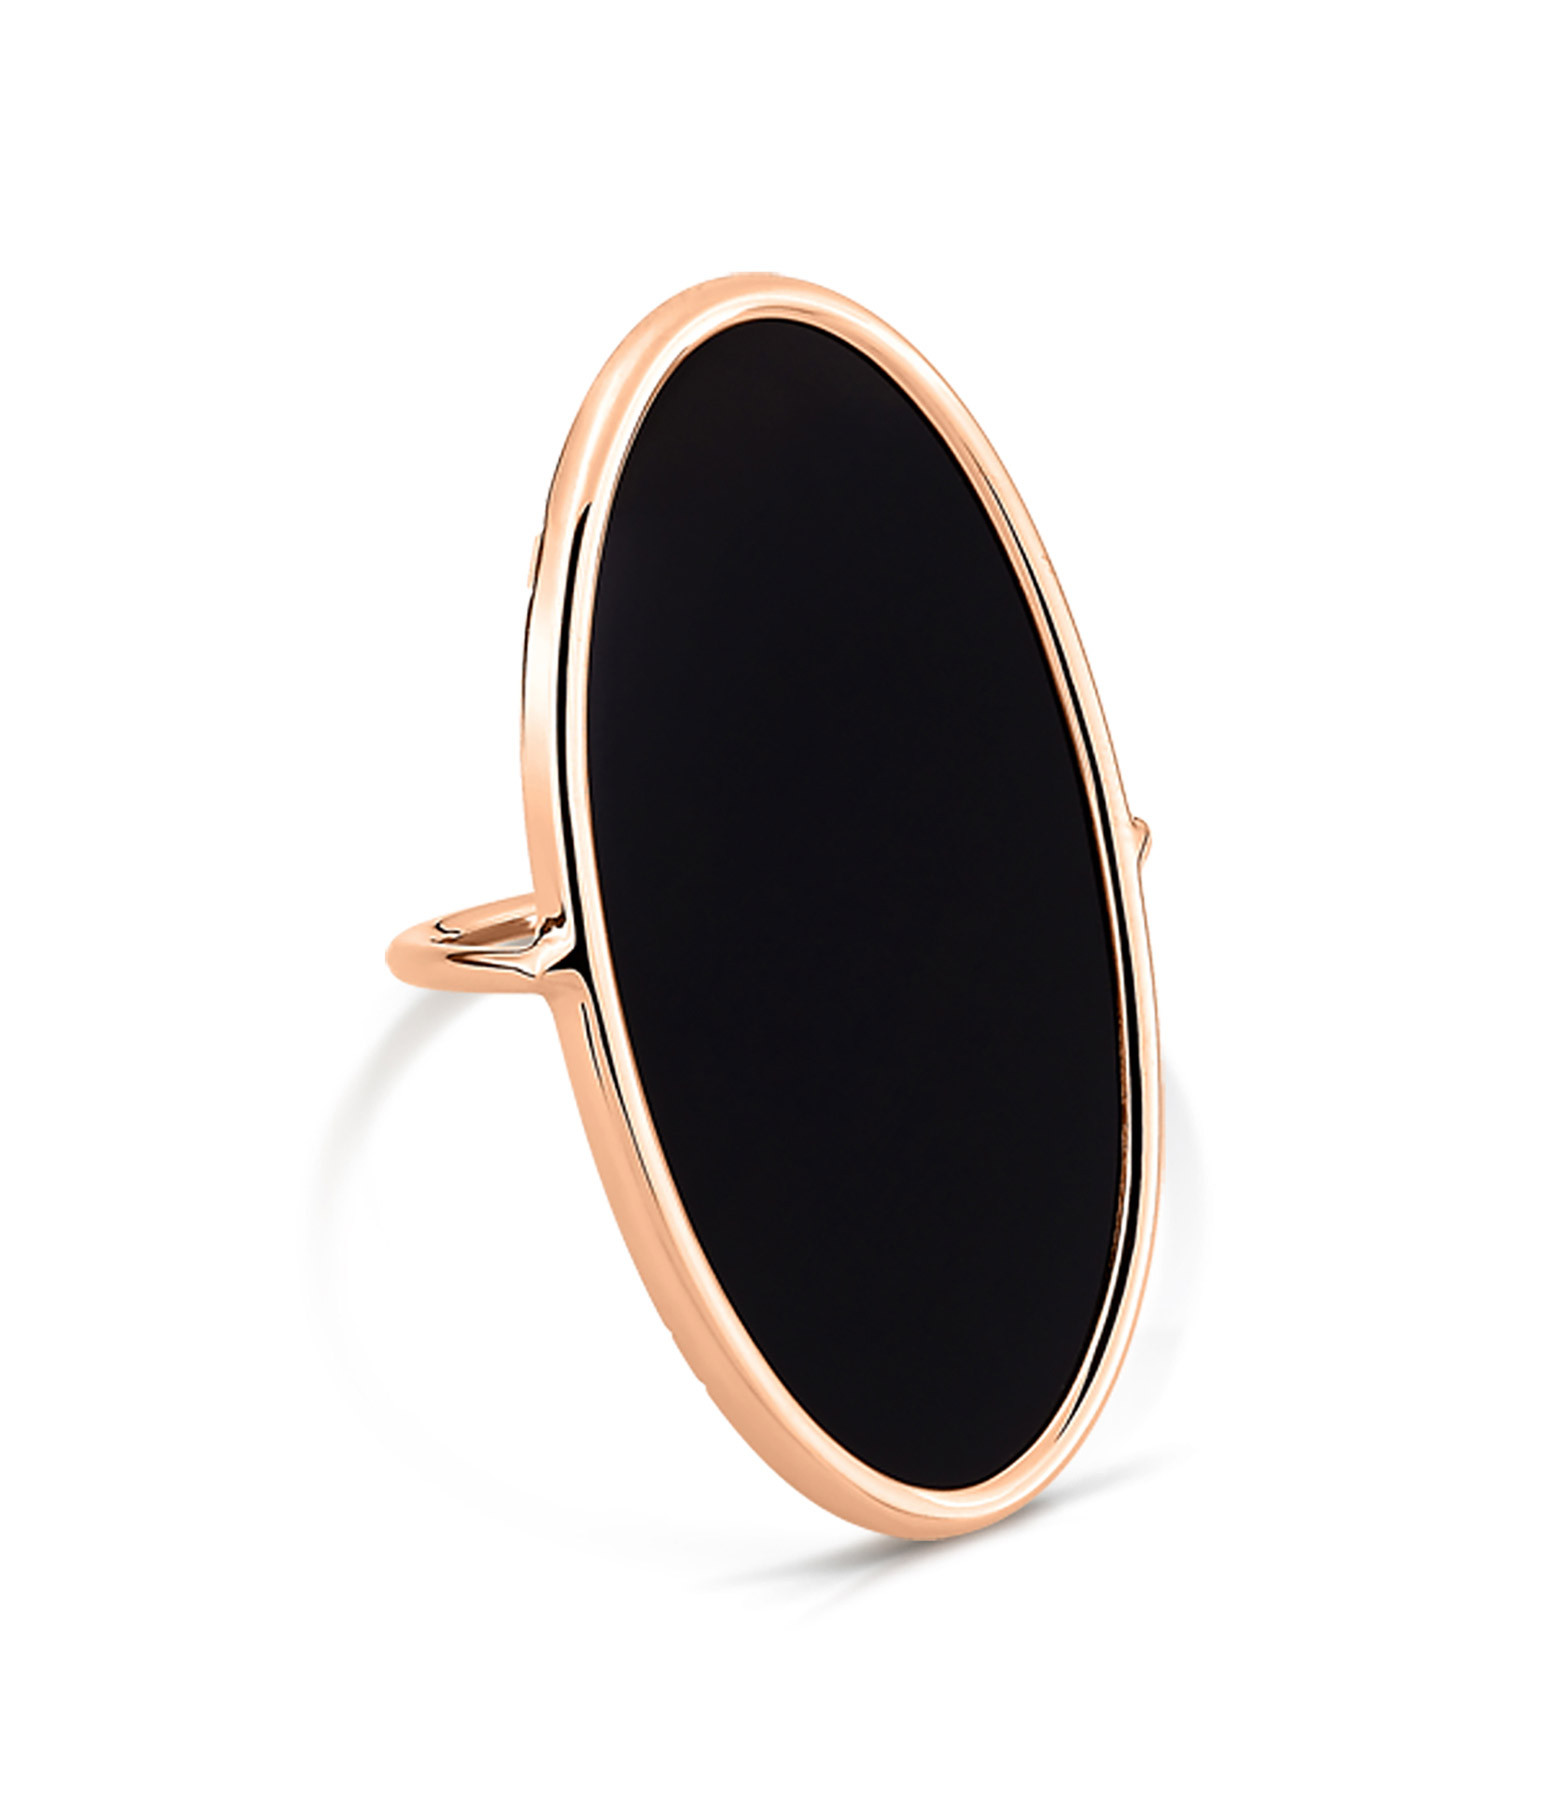 GINETTE_NY - Bague Ellipse Large Or Rose Onyx